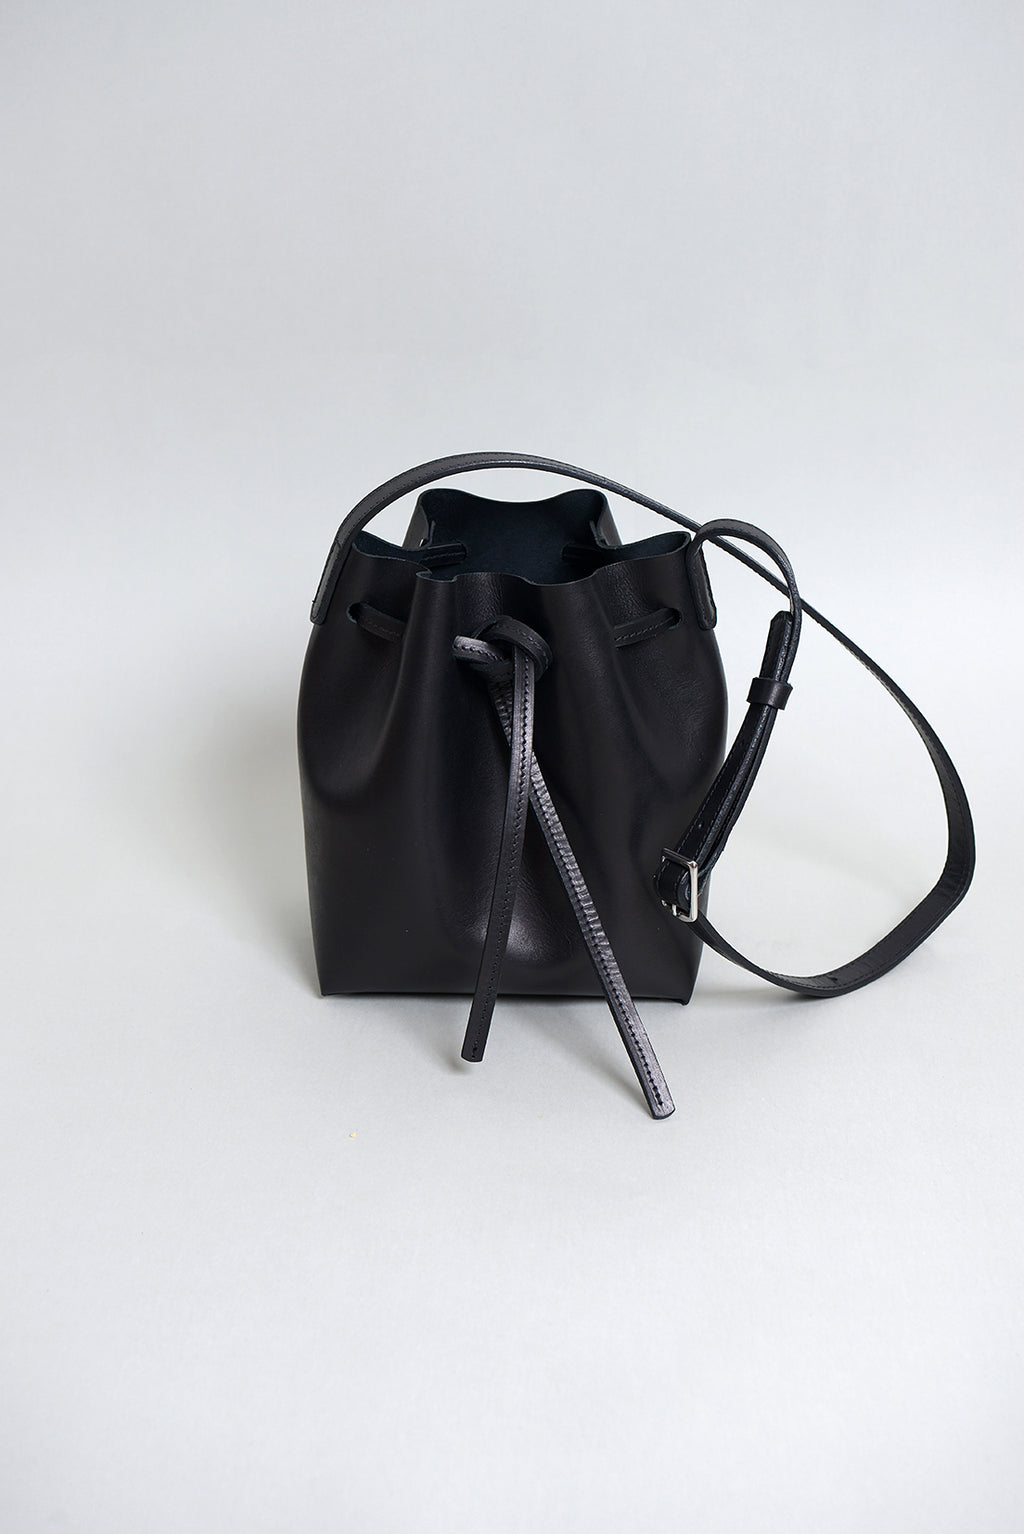 Handcrafted Black Leather Bucket bag